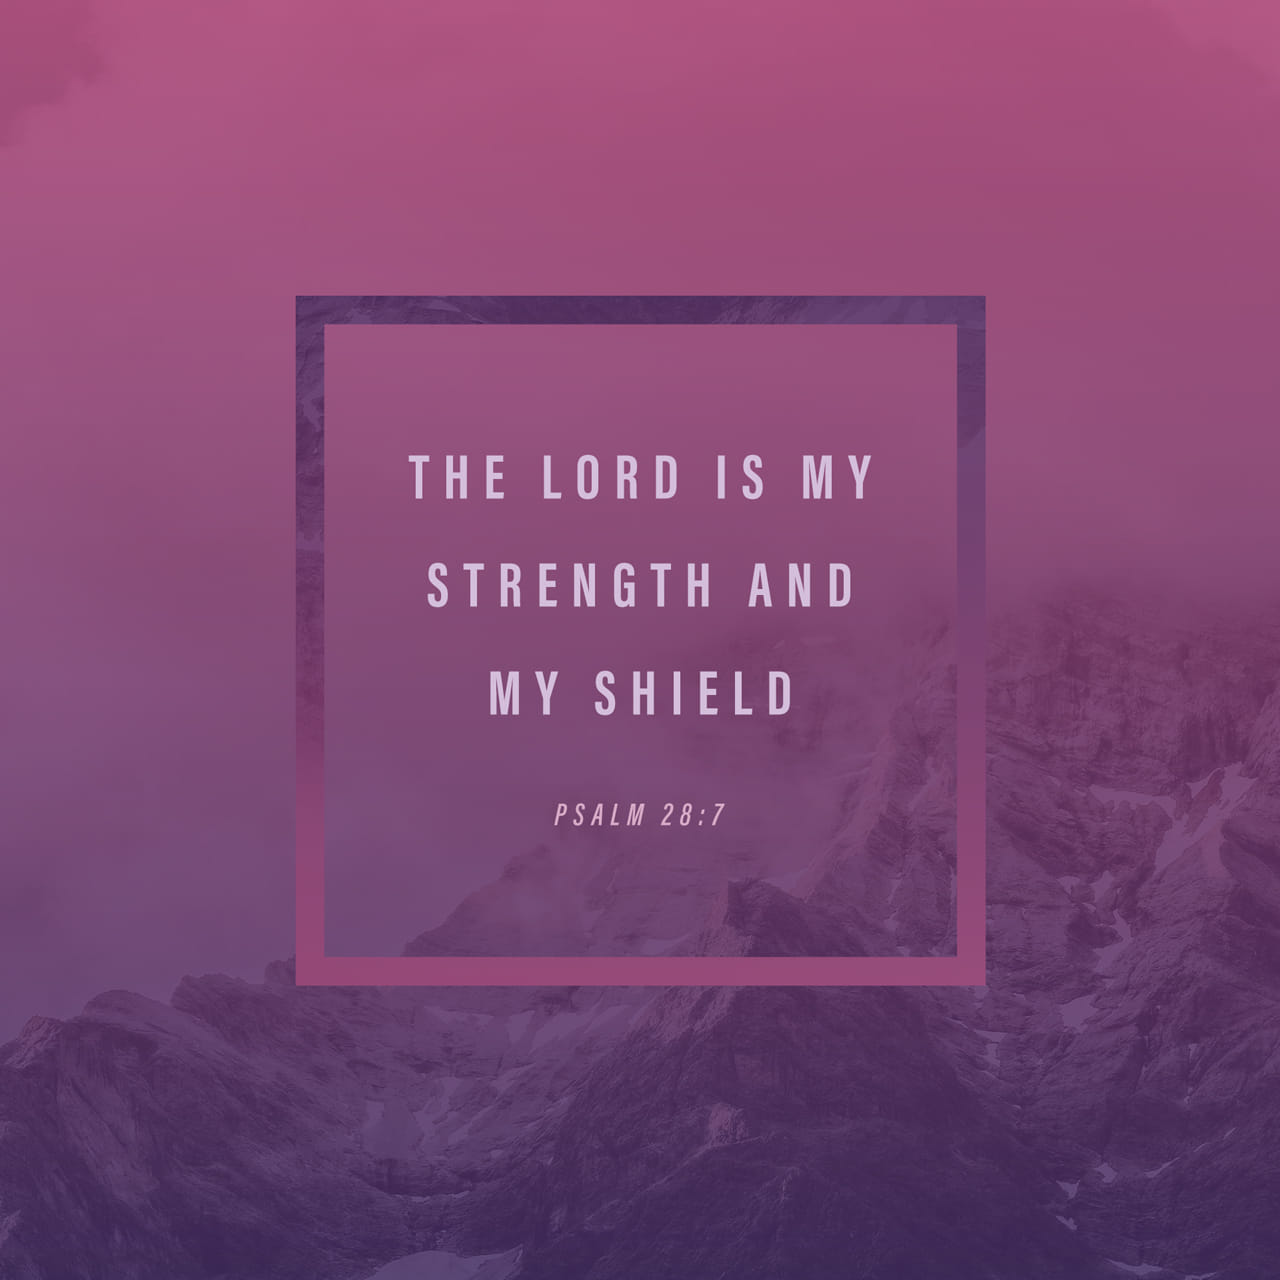 Psalms 28:7 The LORD is my strength and my shield